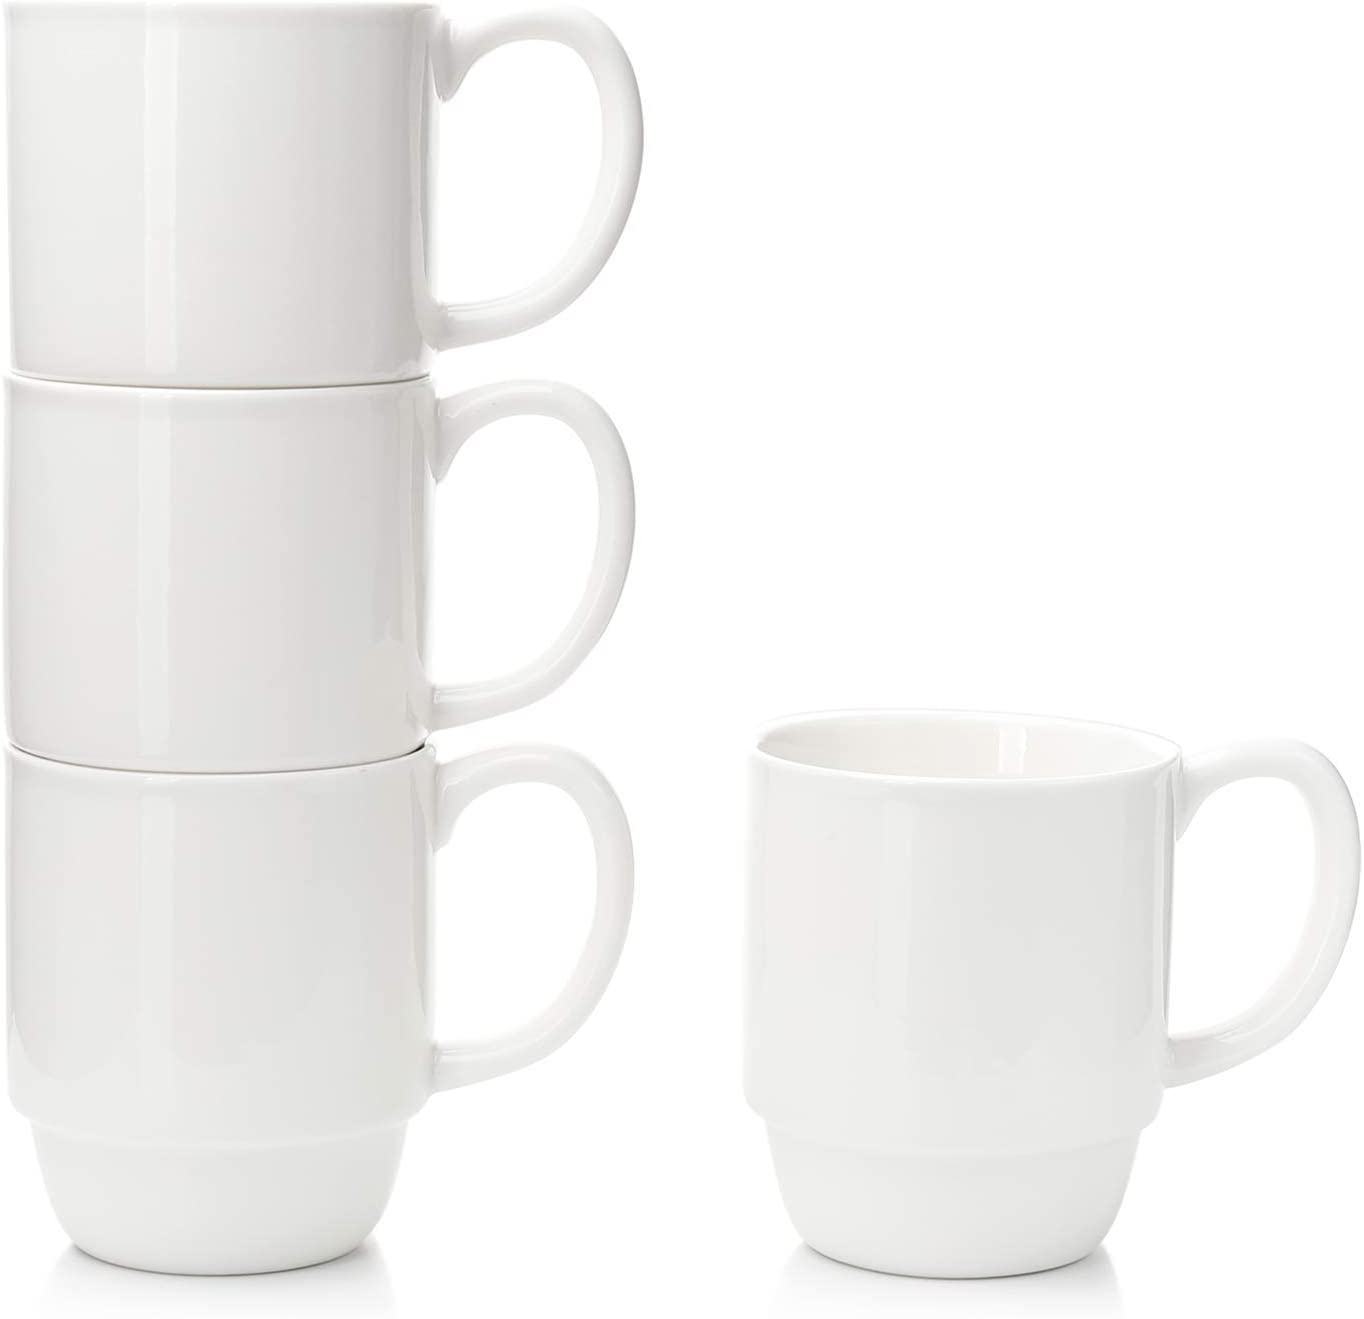 Porcelain Stackable Coffee Mugs Set of 4 - 16 Ounce Cups with Handle for Hot or Cold Drinks like Cocoa, Milk, Tea or Water - Smooth Ceramic with Modern Design, White